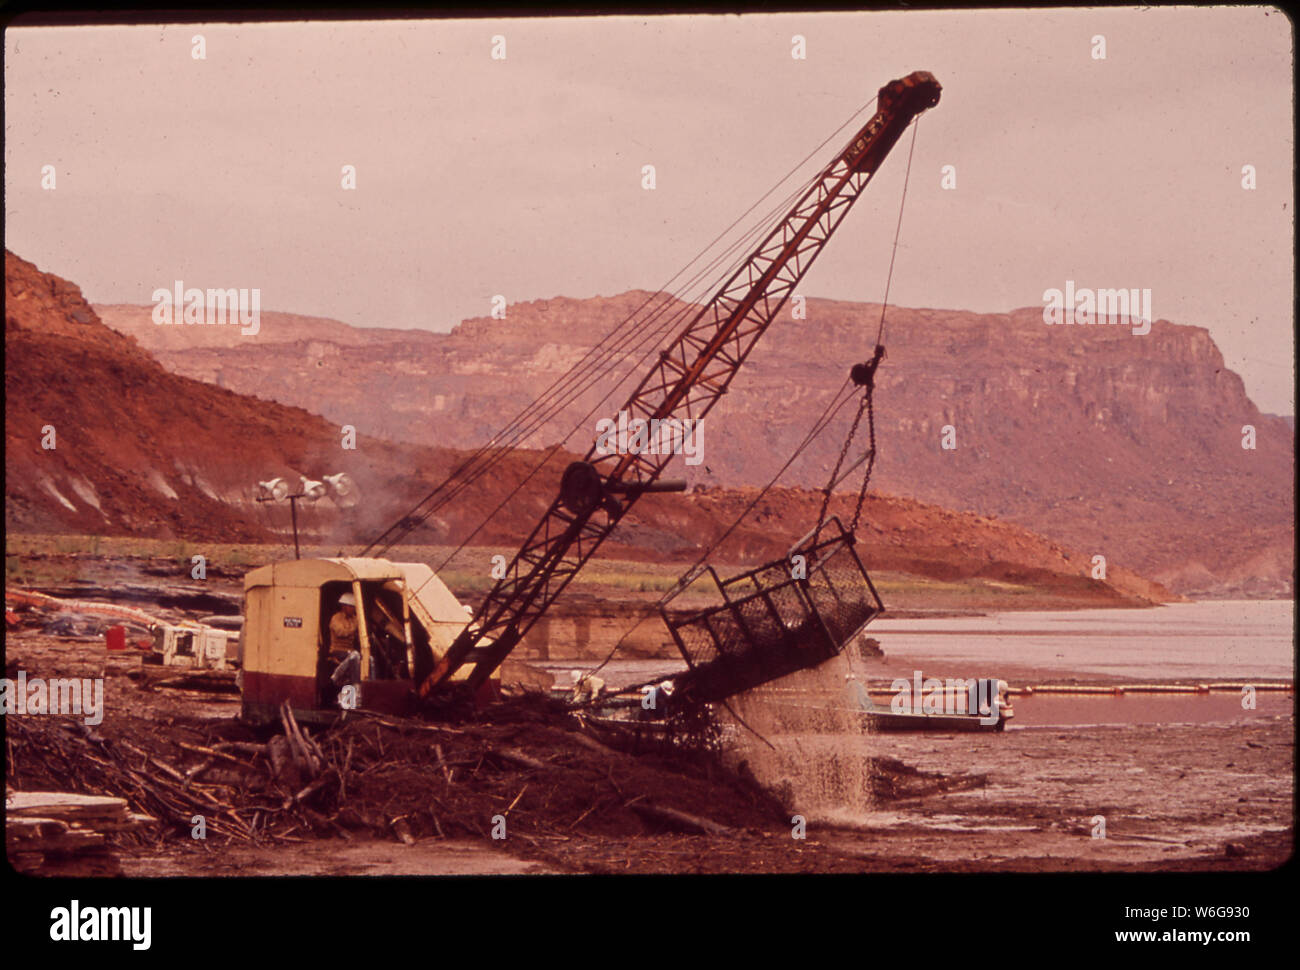 DRAGLINE SHOVEL SCOOPS UP OIL-LADEN DEBRIS FROM LOG BOOM ON SAN JUAN RIVER NEAR LAKE POWELL. OIL FLOWED FROM BURST PIPELINE 200 MILES UPSTREAM NEAR SHIPROCK NEW MEXICO. BOOM CONTAINED THE OIL UNTIL FLOOD CONDITIONS CAUSED MUCH OF IT TO OVERFLOW INTO THE LAKE Stock Photo